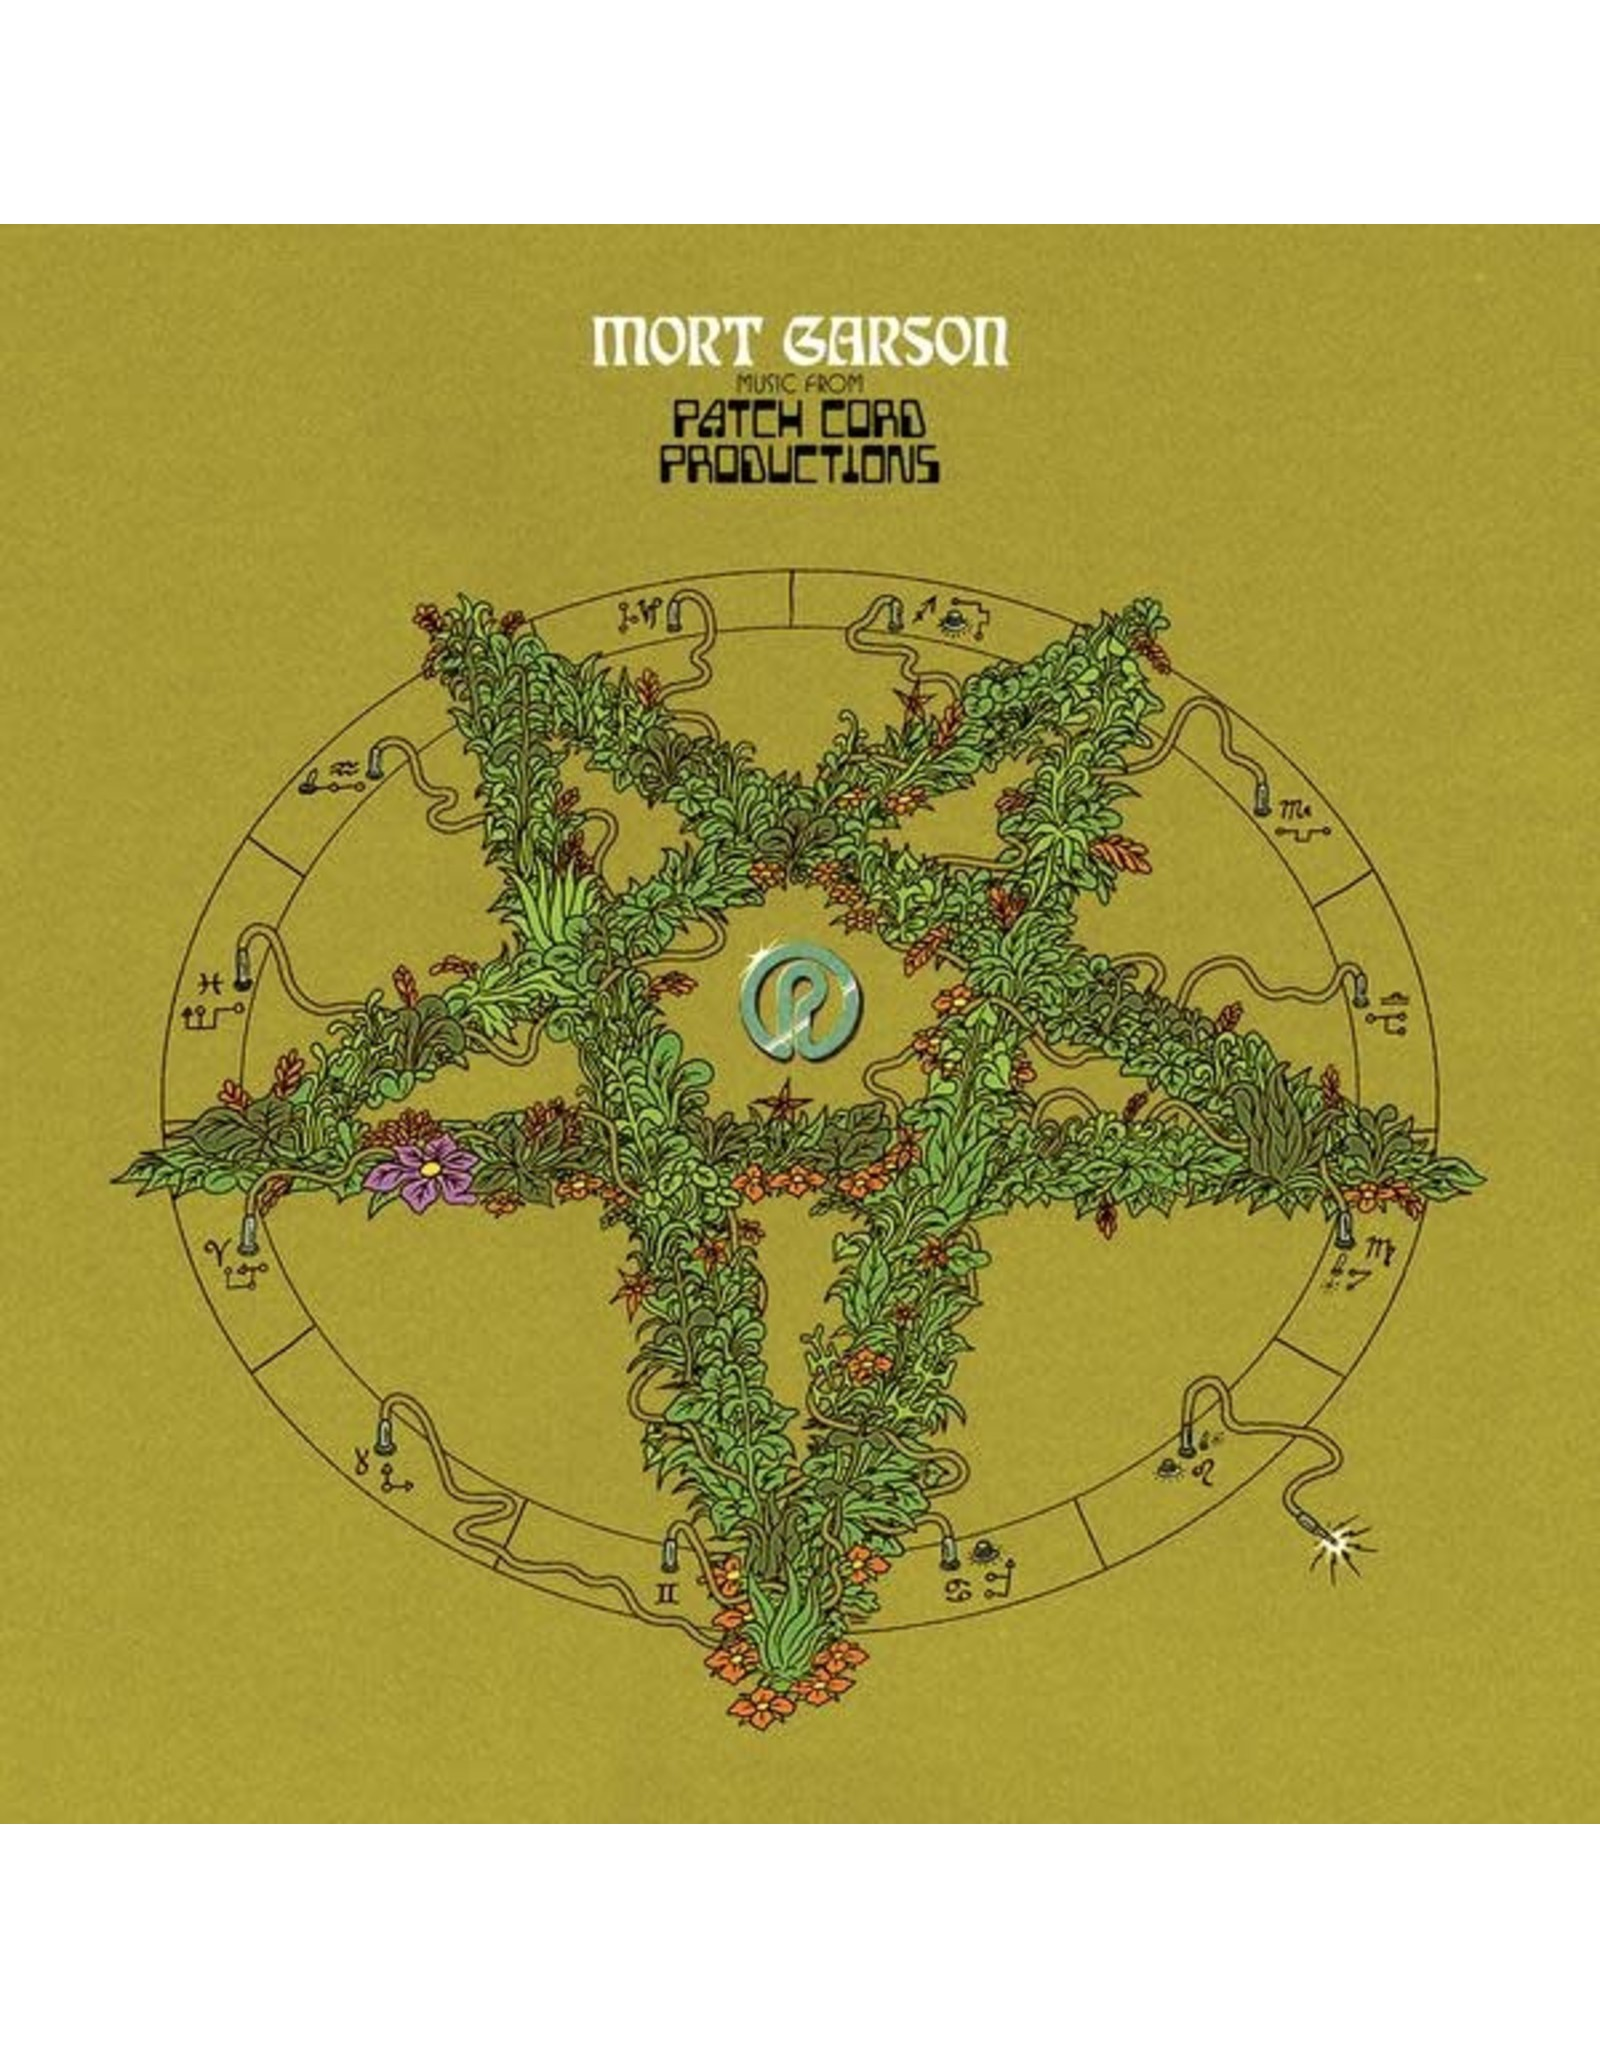 Garson, Mort - Music From Patch Cord Productions (purple vinyl)